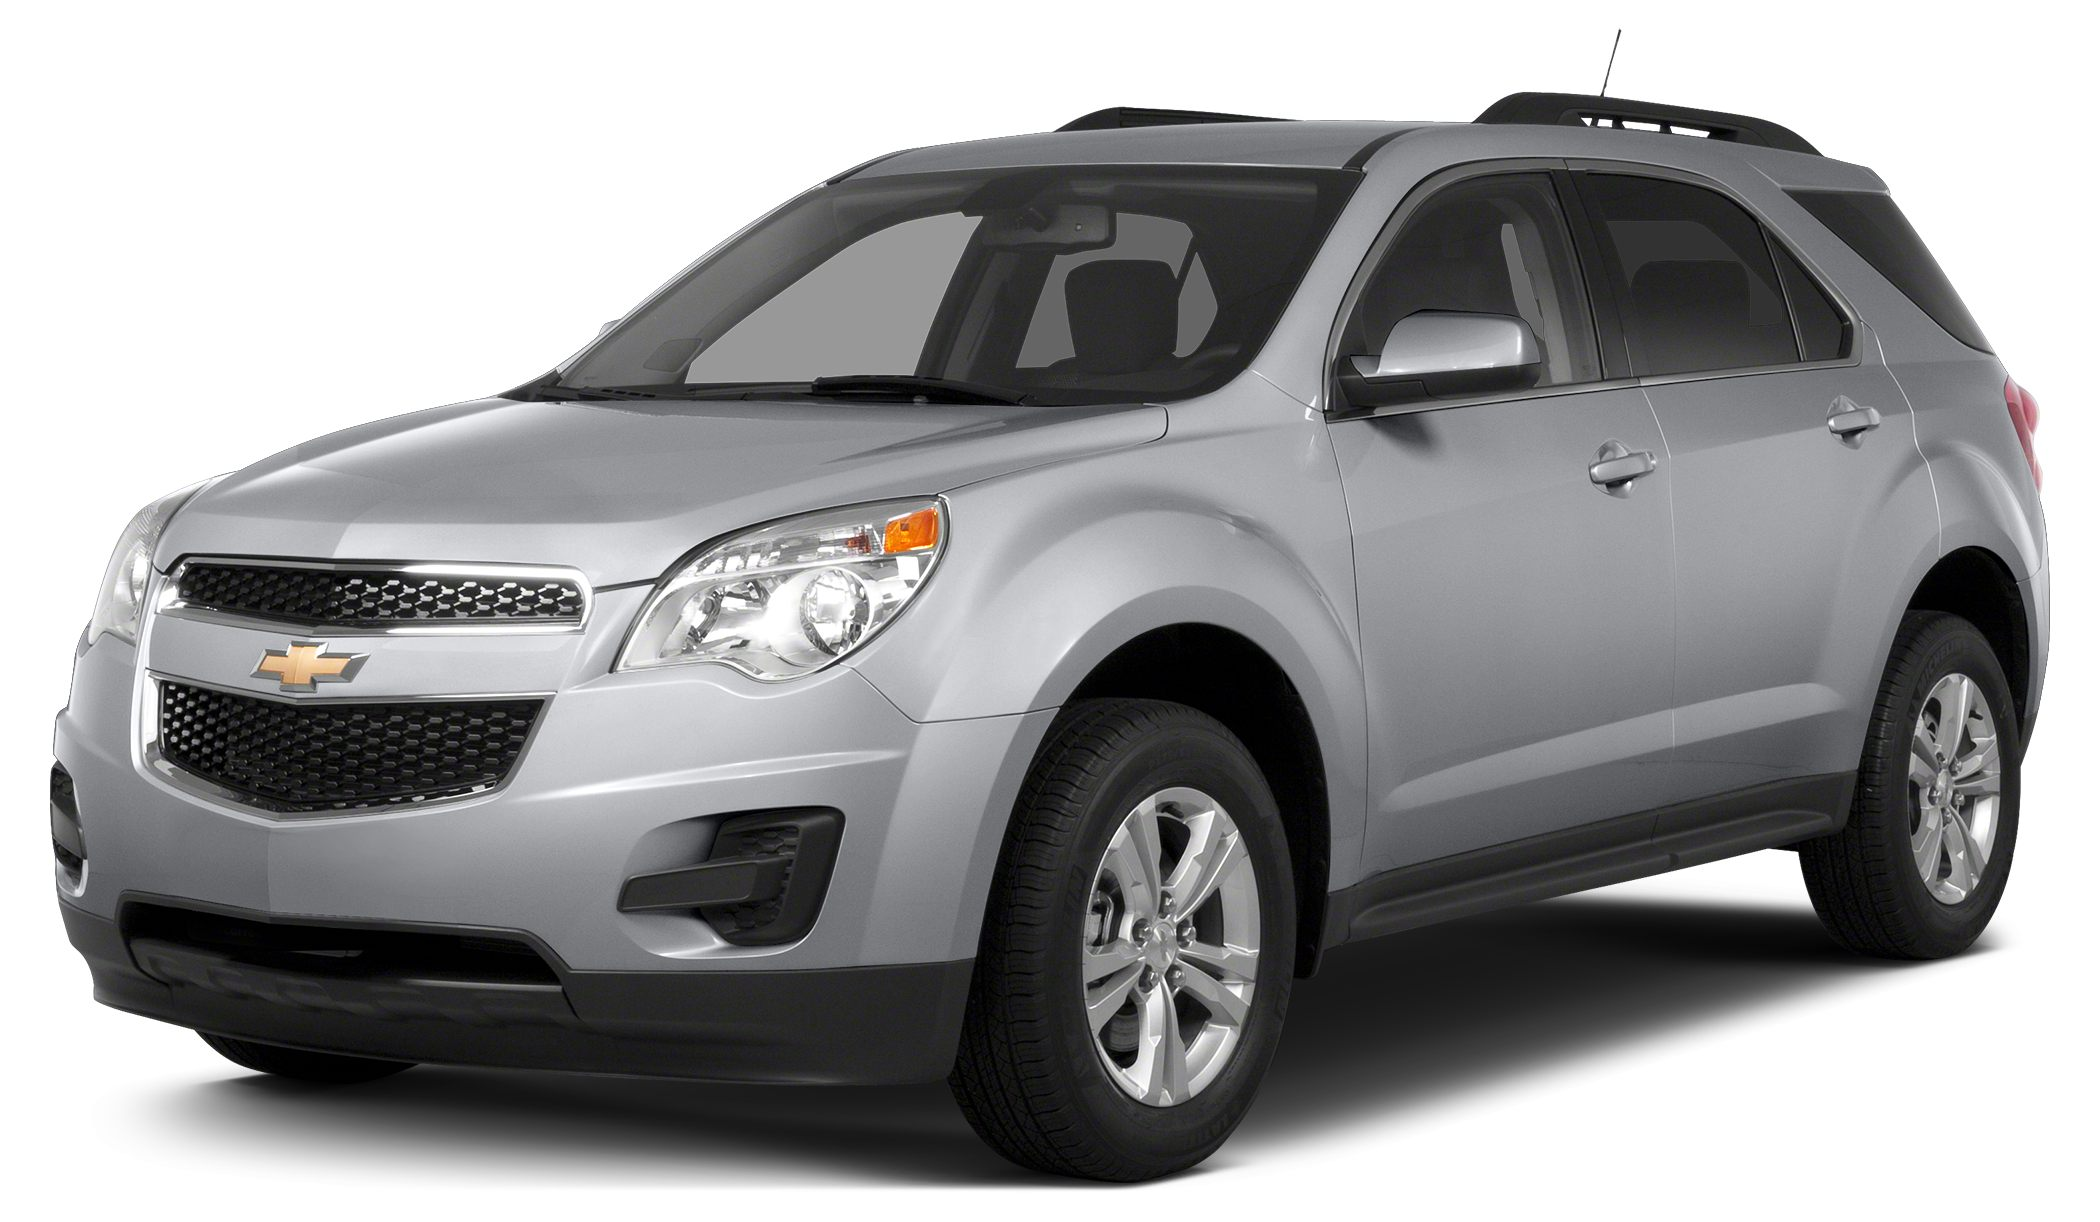 2014 Chevrolet Equinox LT w2LT Excellent Condition GREAT MILES 18356 FUEL EFFICIENT 32 MPG Hwy